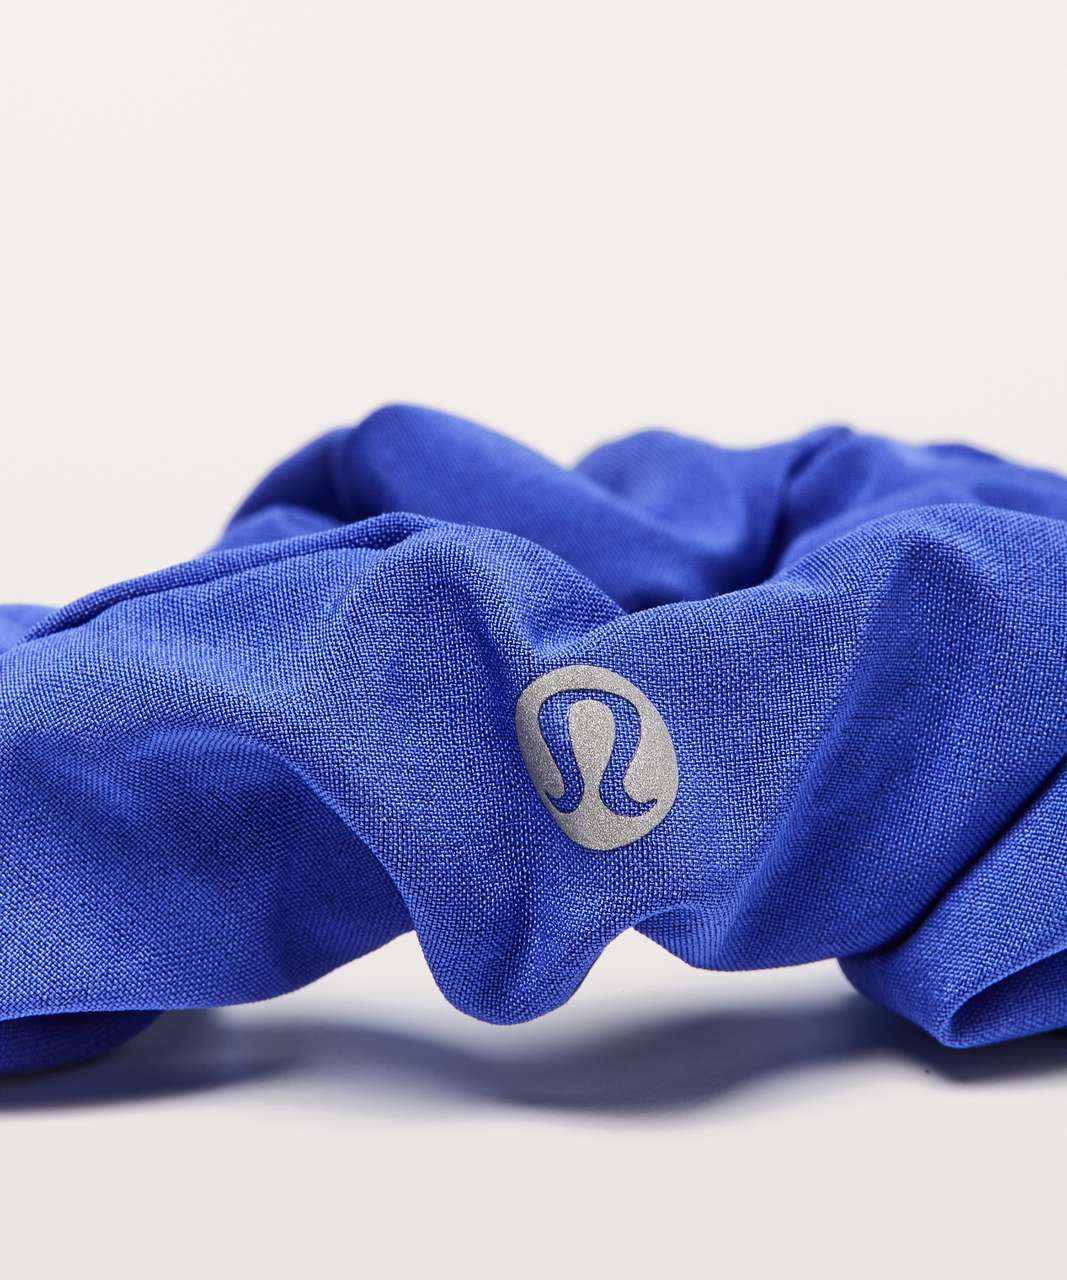 Lululemon Uplifting Scrunchie - Moroccan Blue